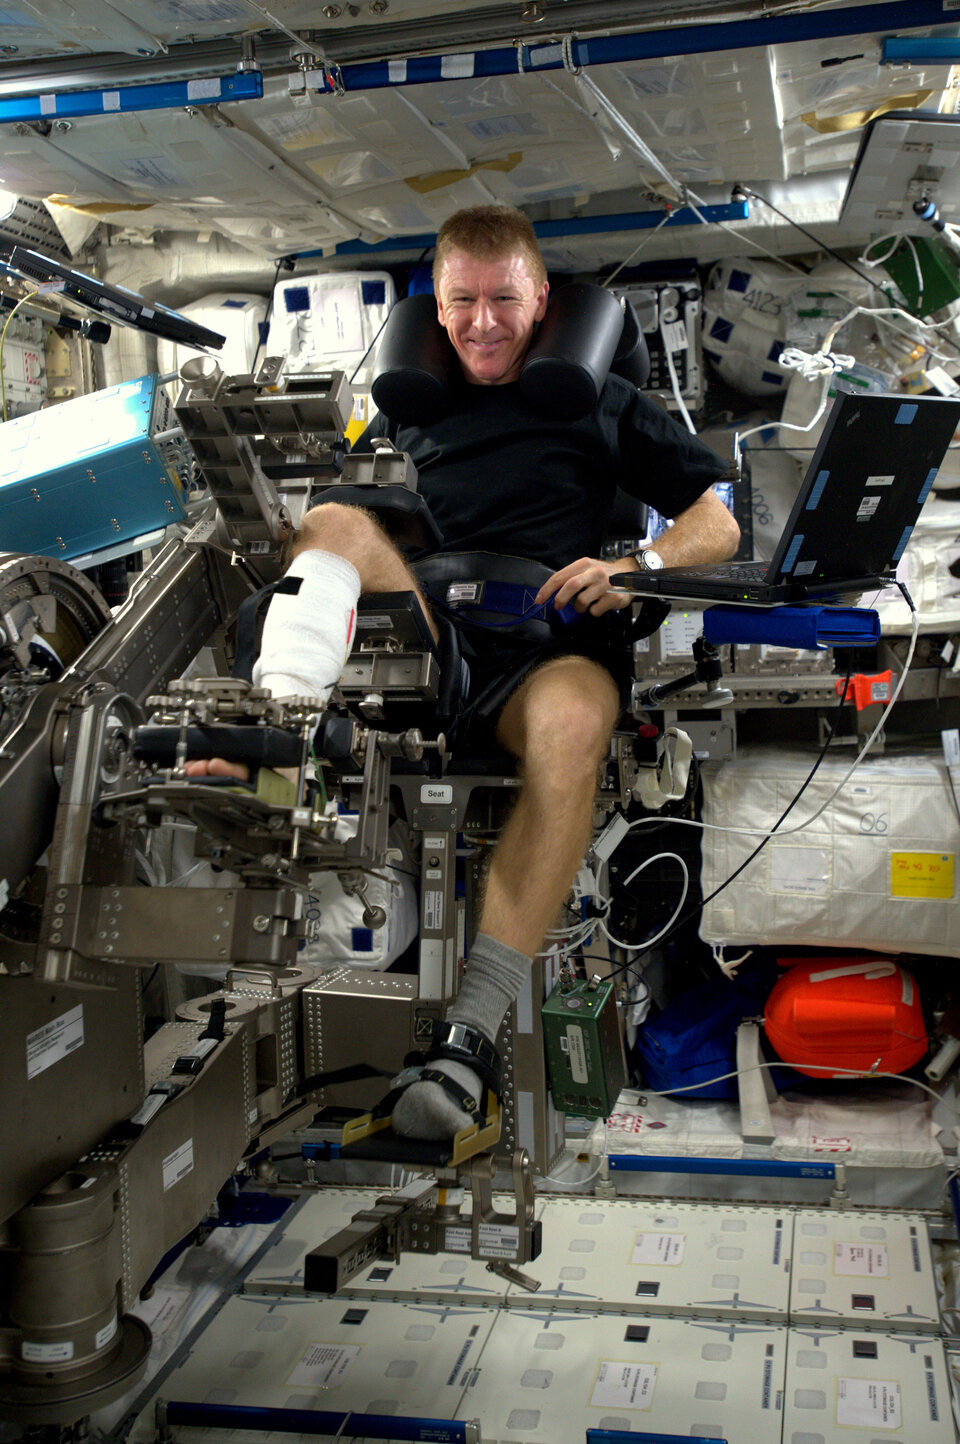 ESA astronaut Tim Peake using Mares in space